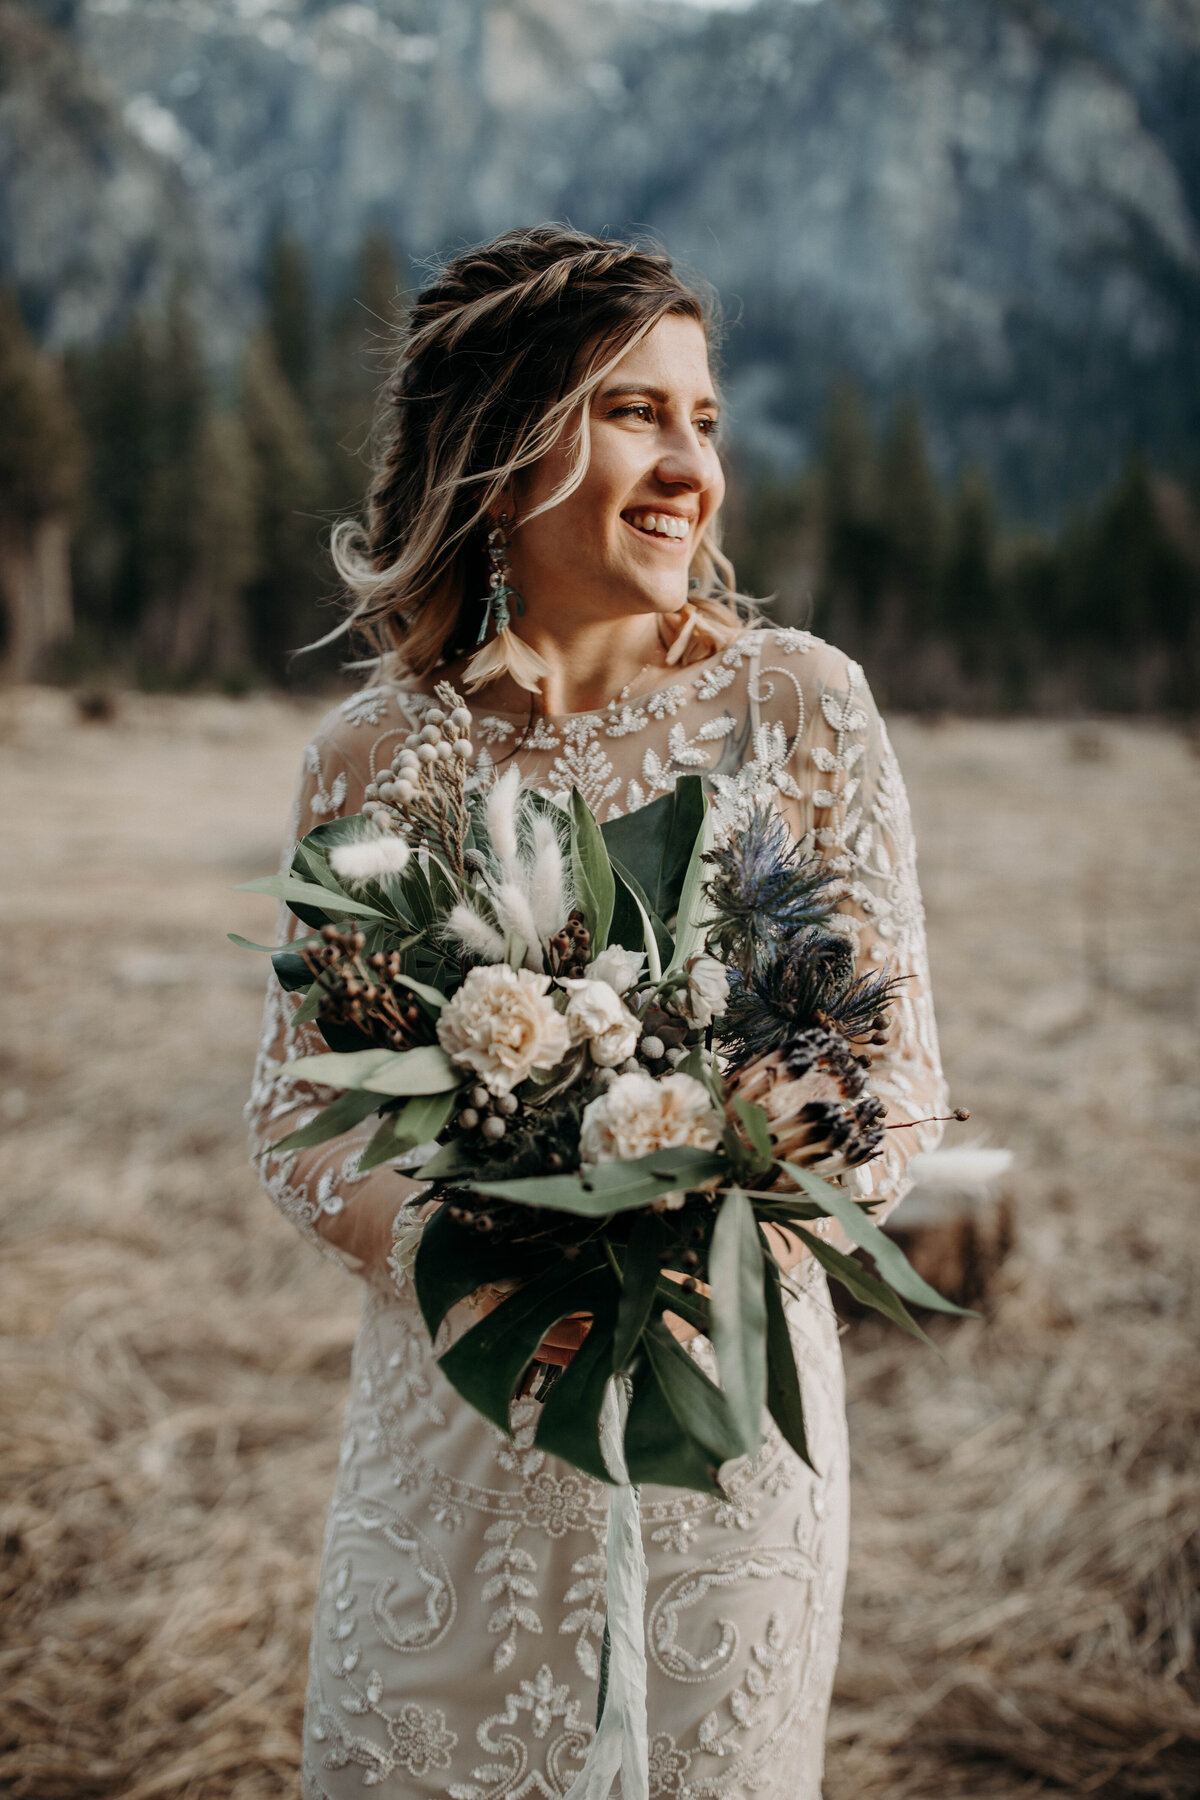 yosemite-boho-intimate-elopement-cailynn-wolfgang-photo-195